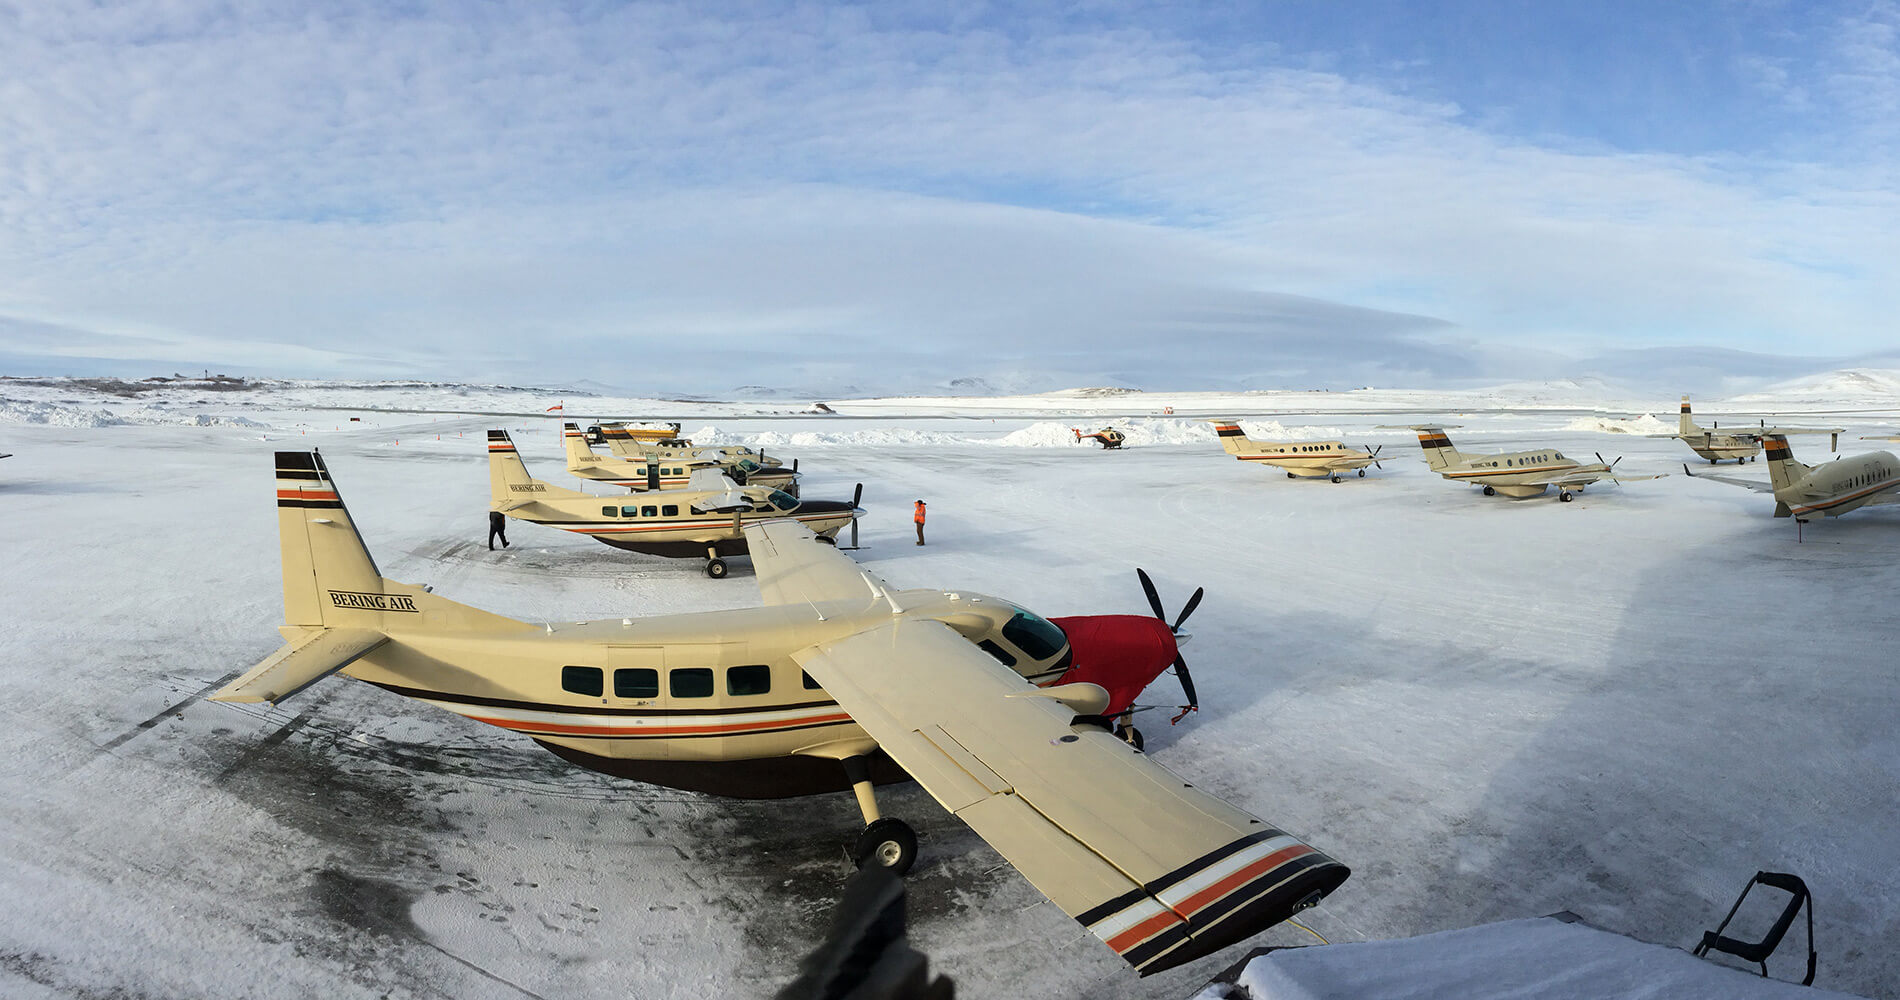 Rows of Cessna Caravans on a snowy ramp